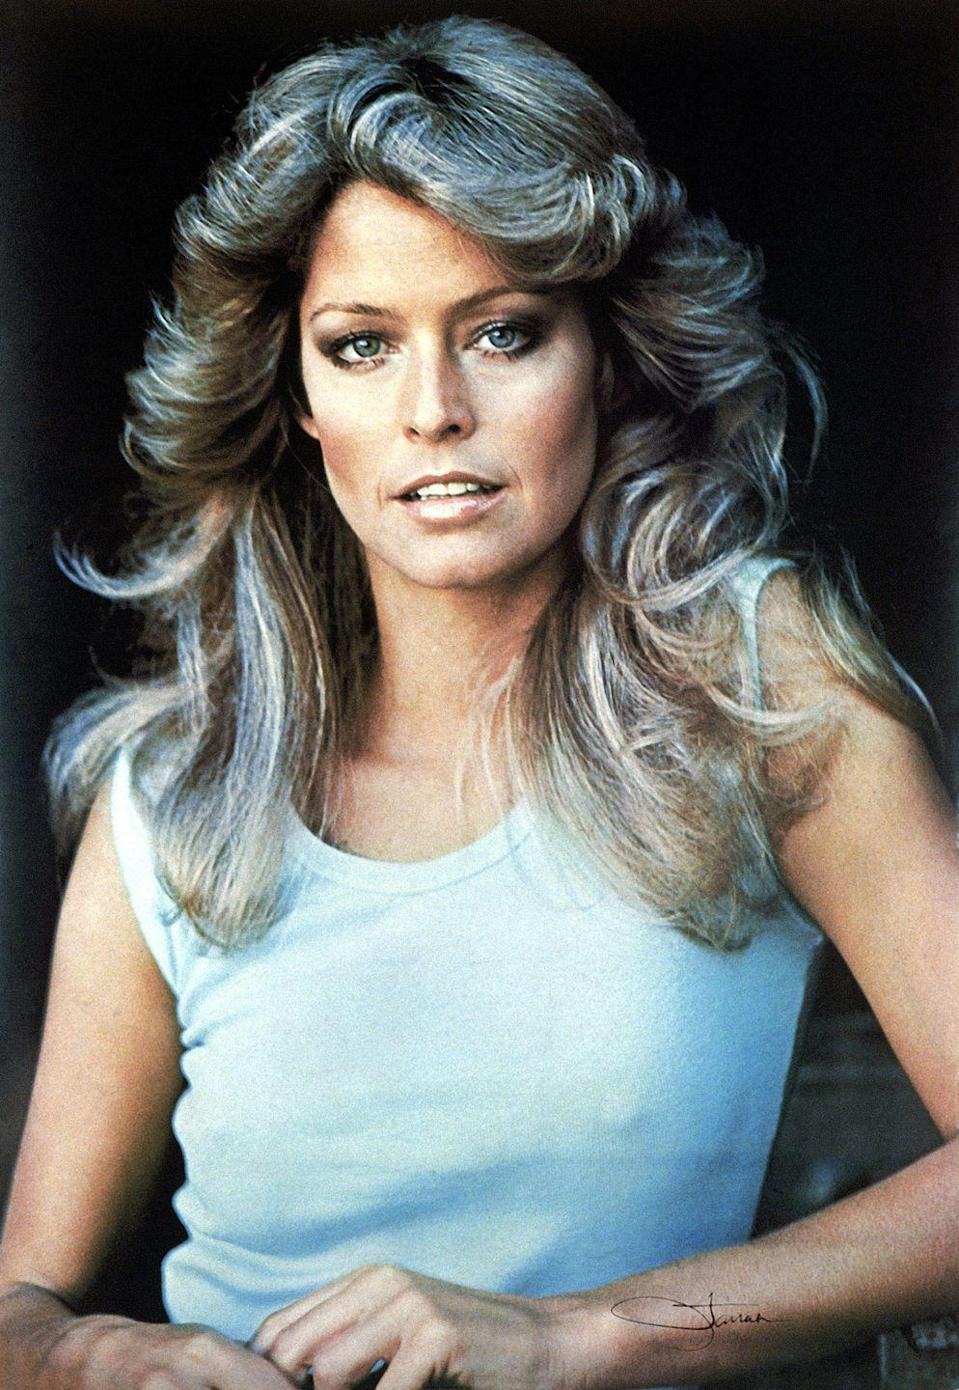 "<p>Farrah Fawcett and her unforgettable hair on <em><a href=""https://www.goodhousekeeping.com/beauty/anti-aging/news/a35140/jaclyn-smith-2015/"" rel=""nofollow noopener"" target=""_blank"" data-ylk=""slk:Charlie's Angels"" class=""link rapid-noclick-resp"">Charlie's Angels</a></em> inspired countless women to highlight their hair and blow it out into full, sweeping waves.</p>"